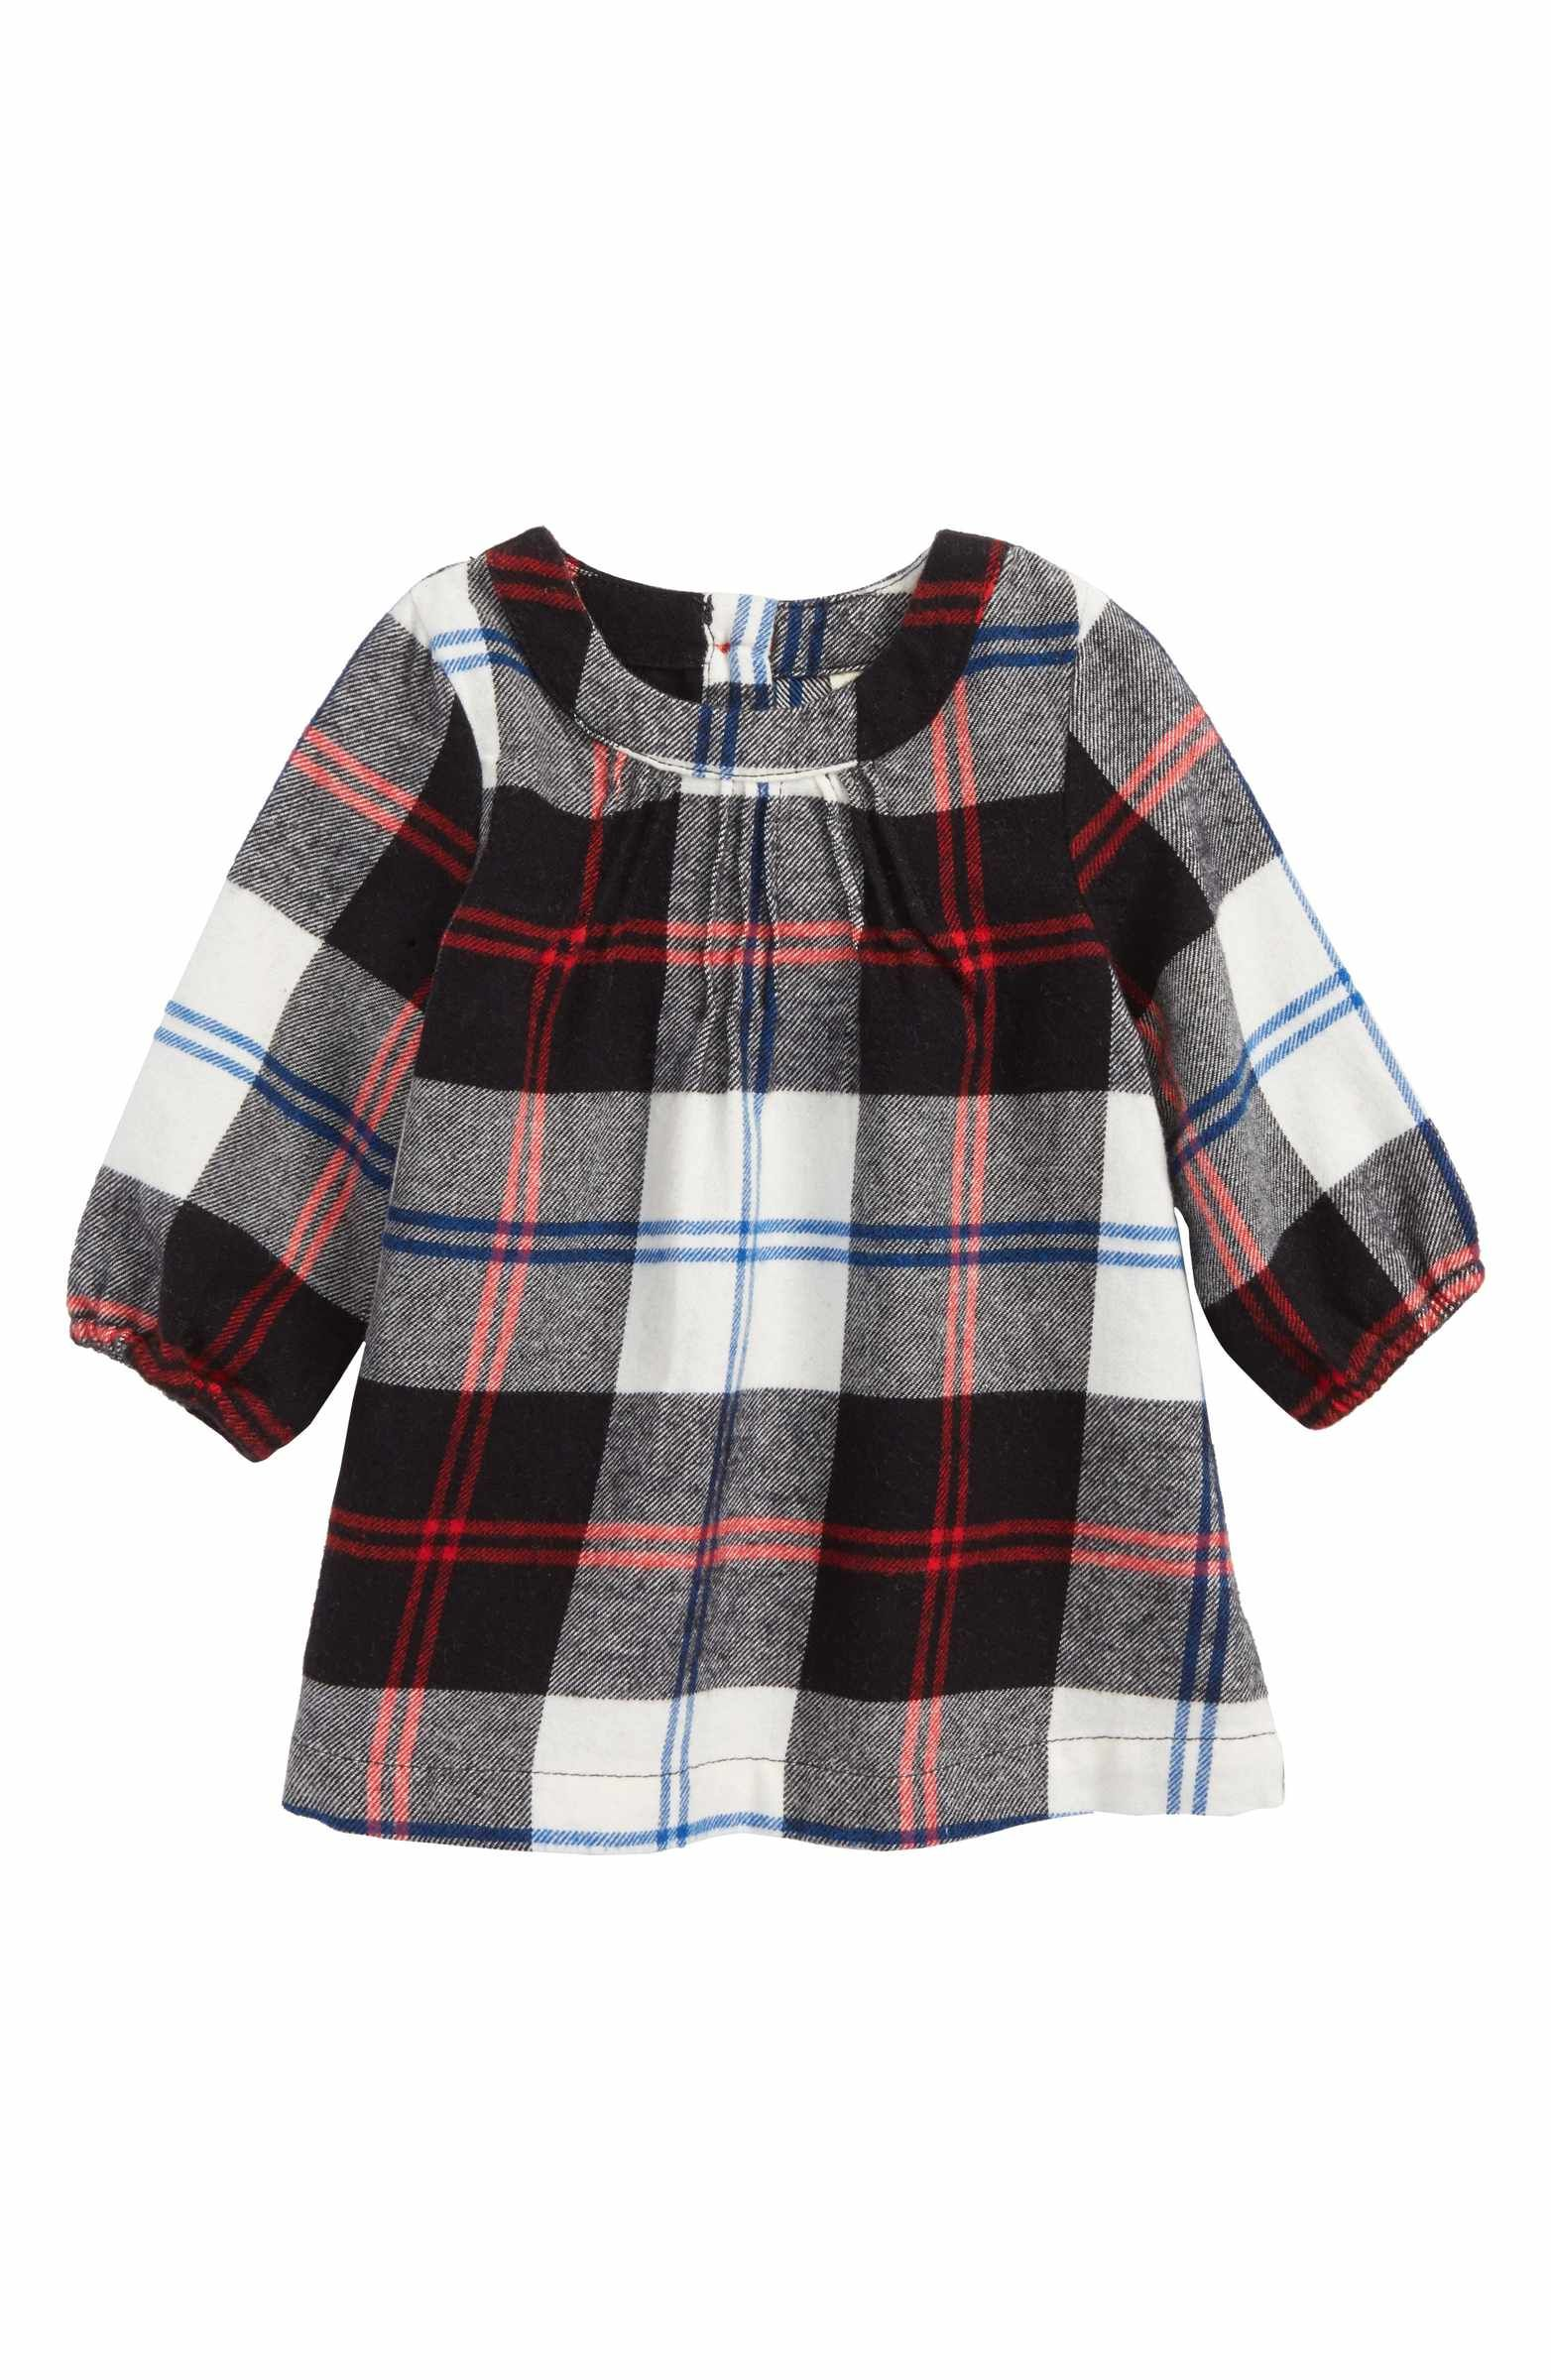 8742b9bff2a7 Main Image - Tucker + Tate Holiday Flannel Dress (Baby Girls)